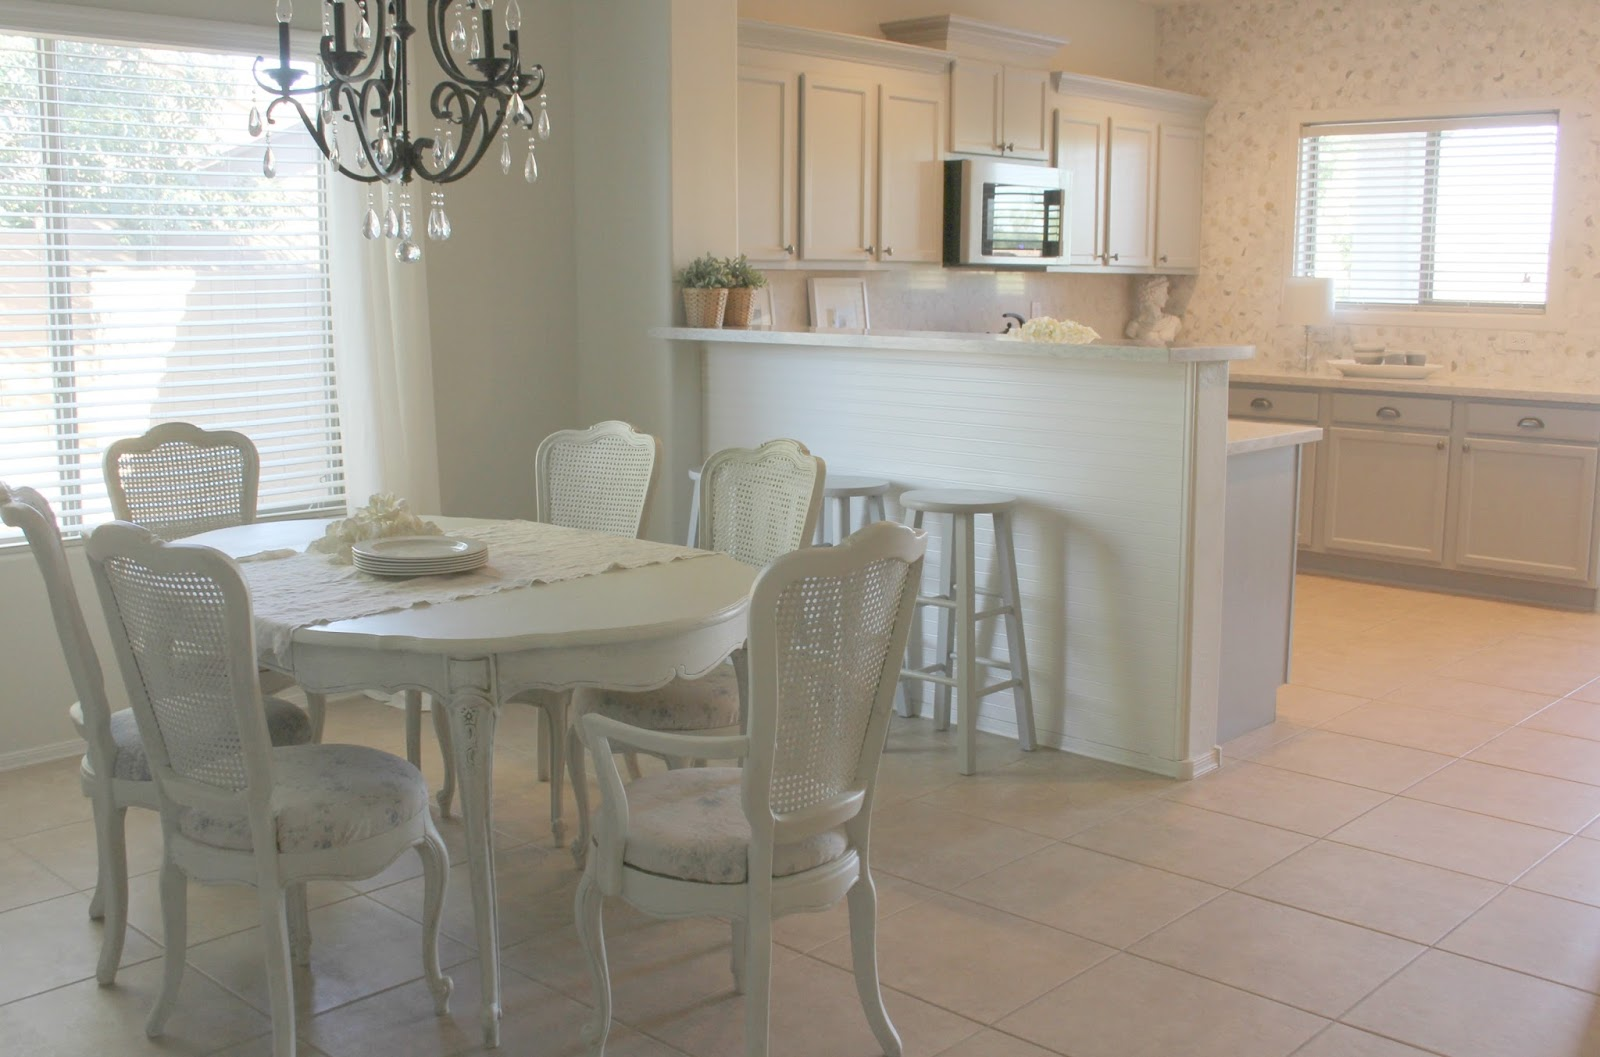 French Country shabby chic dining room and European inspired kitchen by Hello Lovely Studio